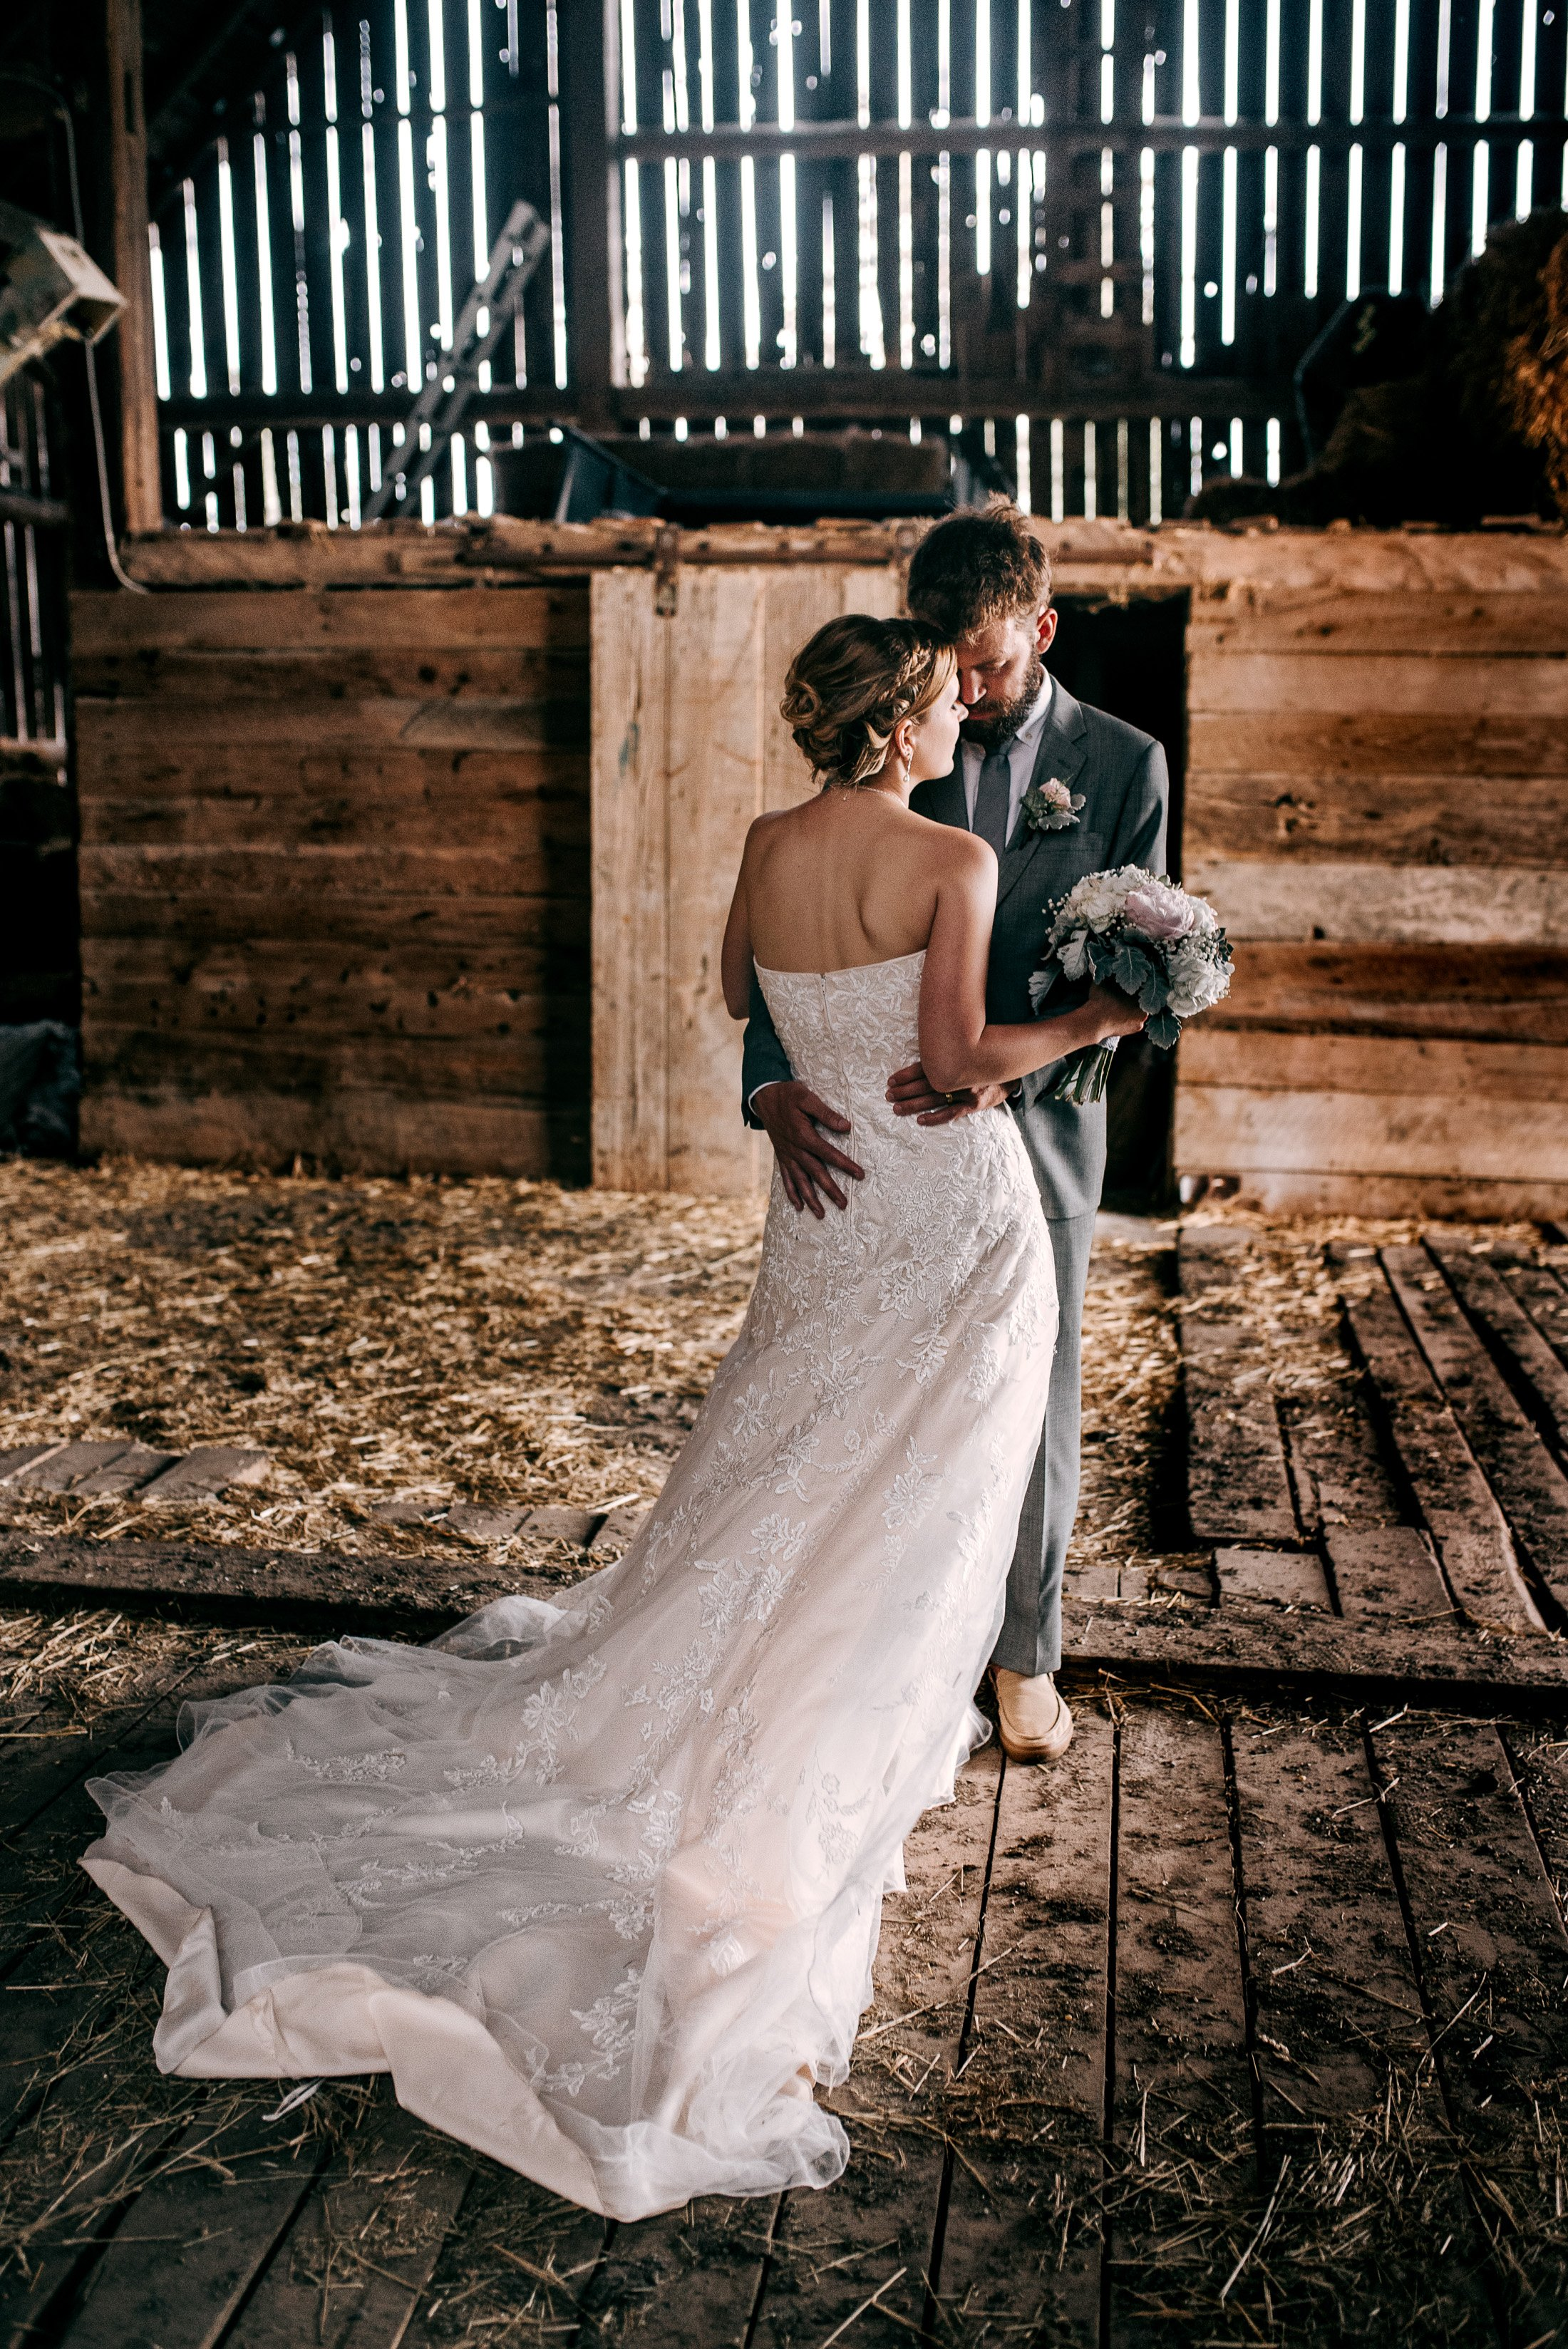 020 - barn wedding toronto ontario